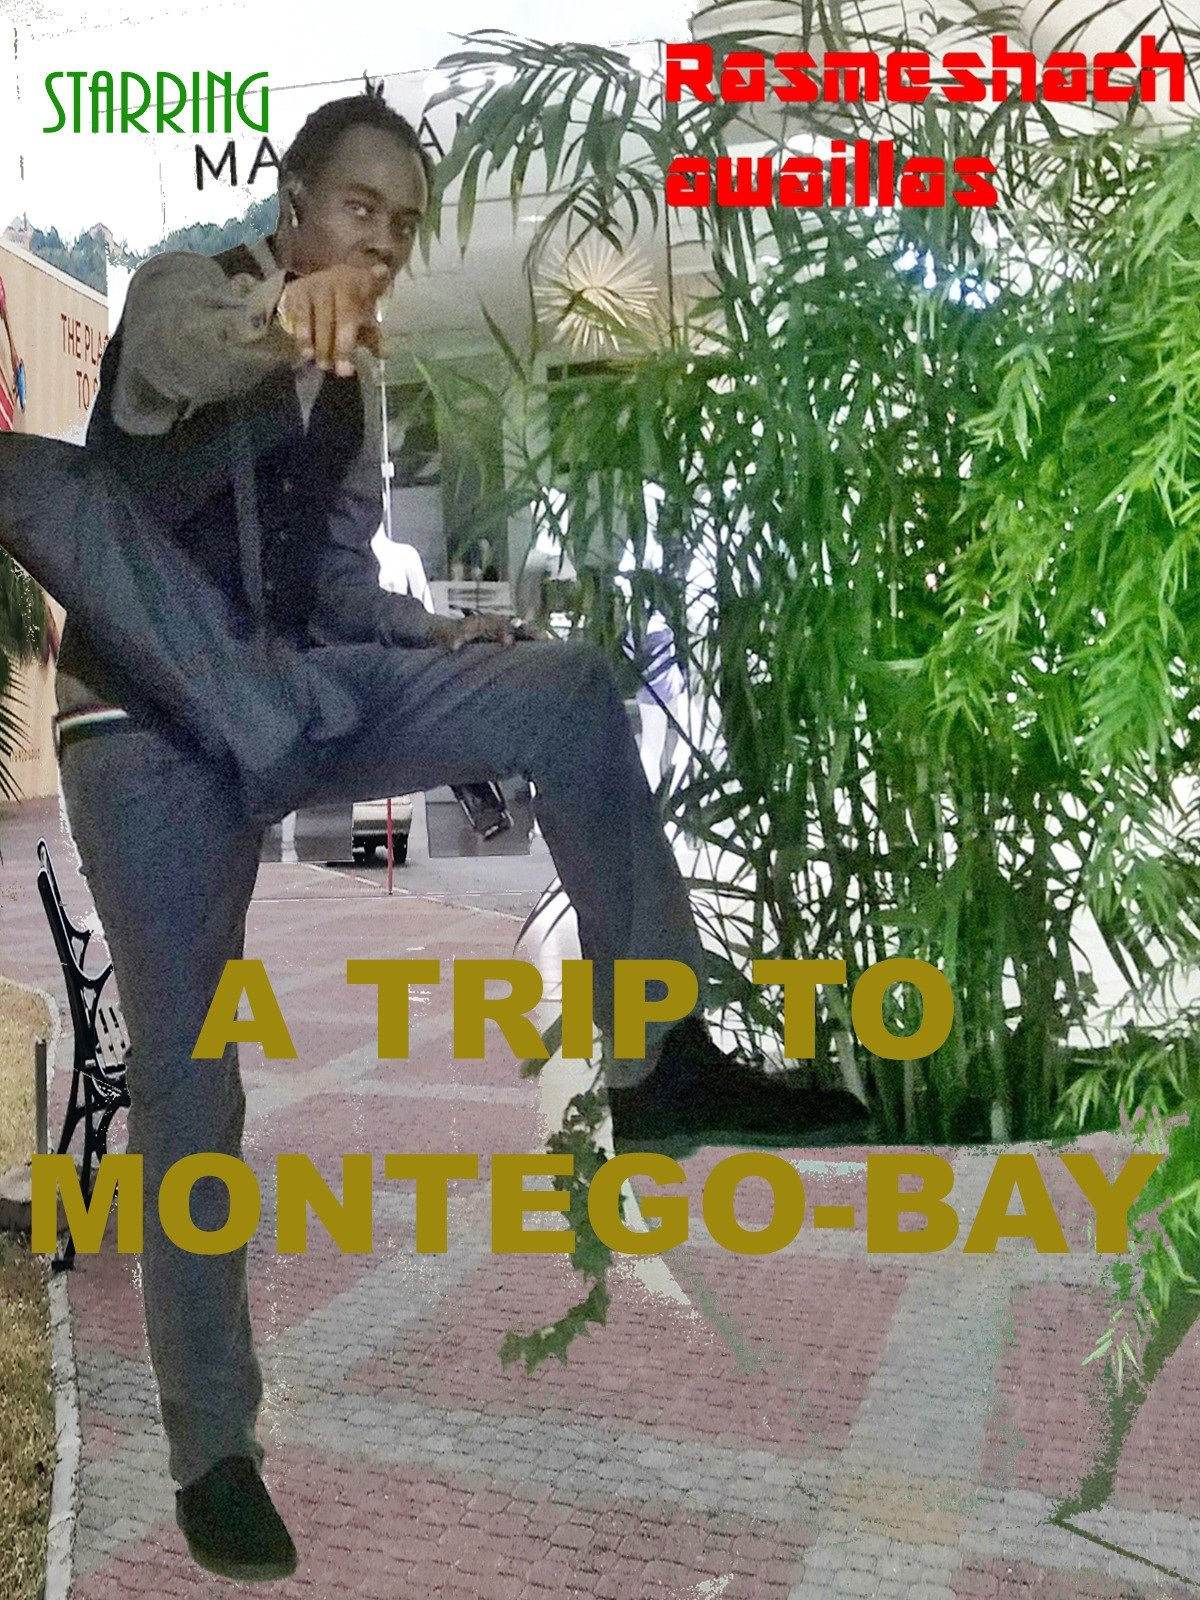 A Trip To Montego-bay